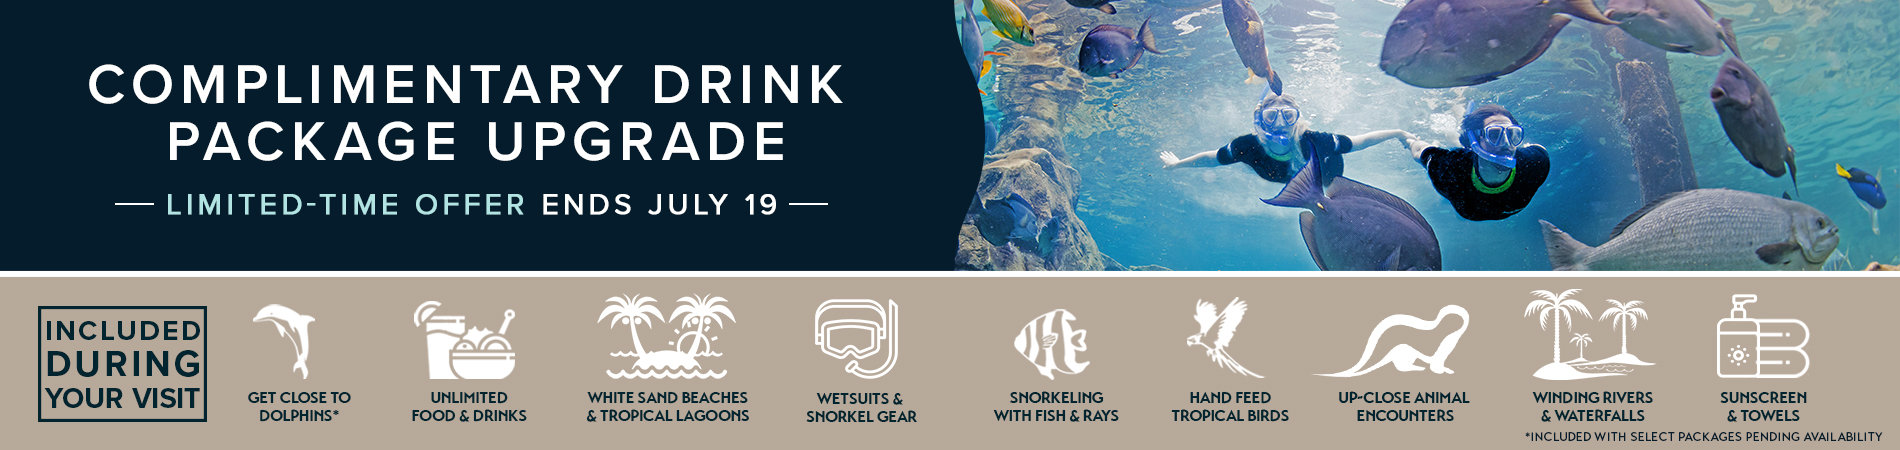 Discovery Cove Complimentary Drink Package